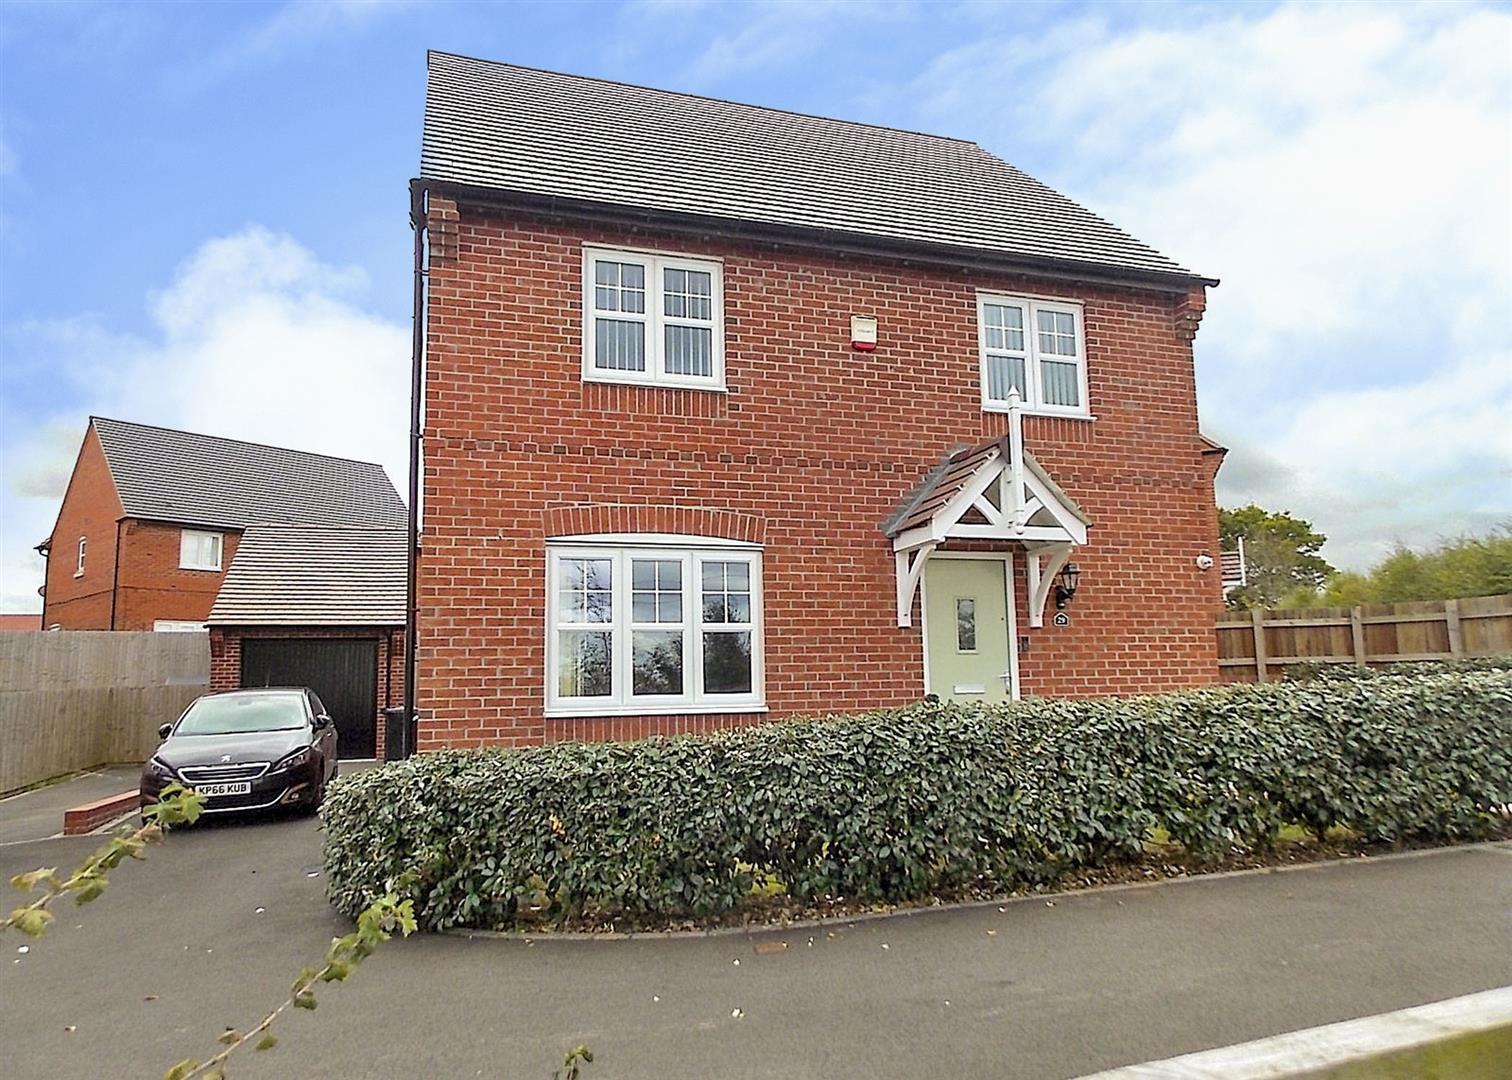 4 Bedrooms Detached House for sale in Argonaut Avenue, Castle Donington